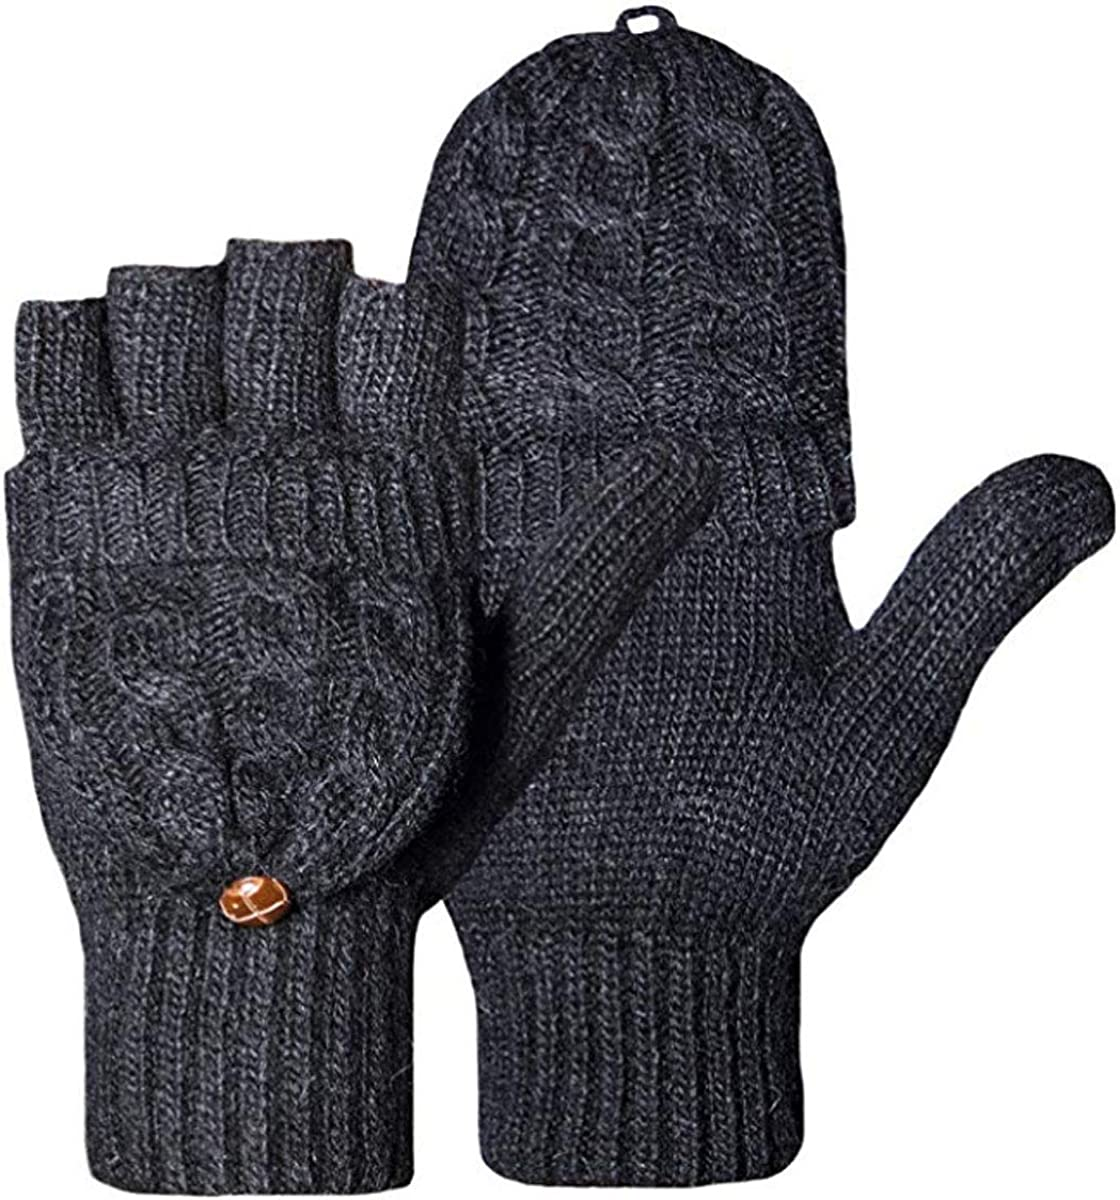 Women Knitted Fingerless Gloves Mittens Wool Texting Thermal Snow Gloves Mitts